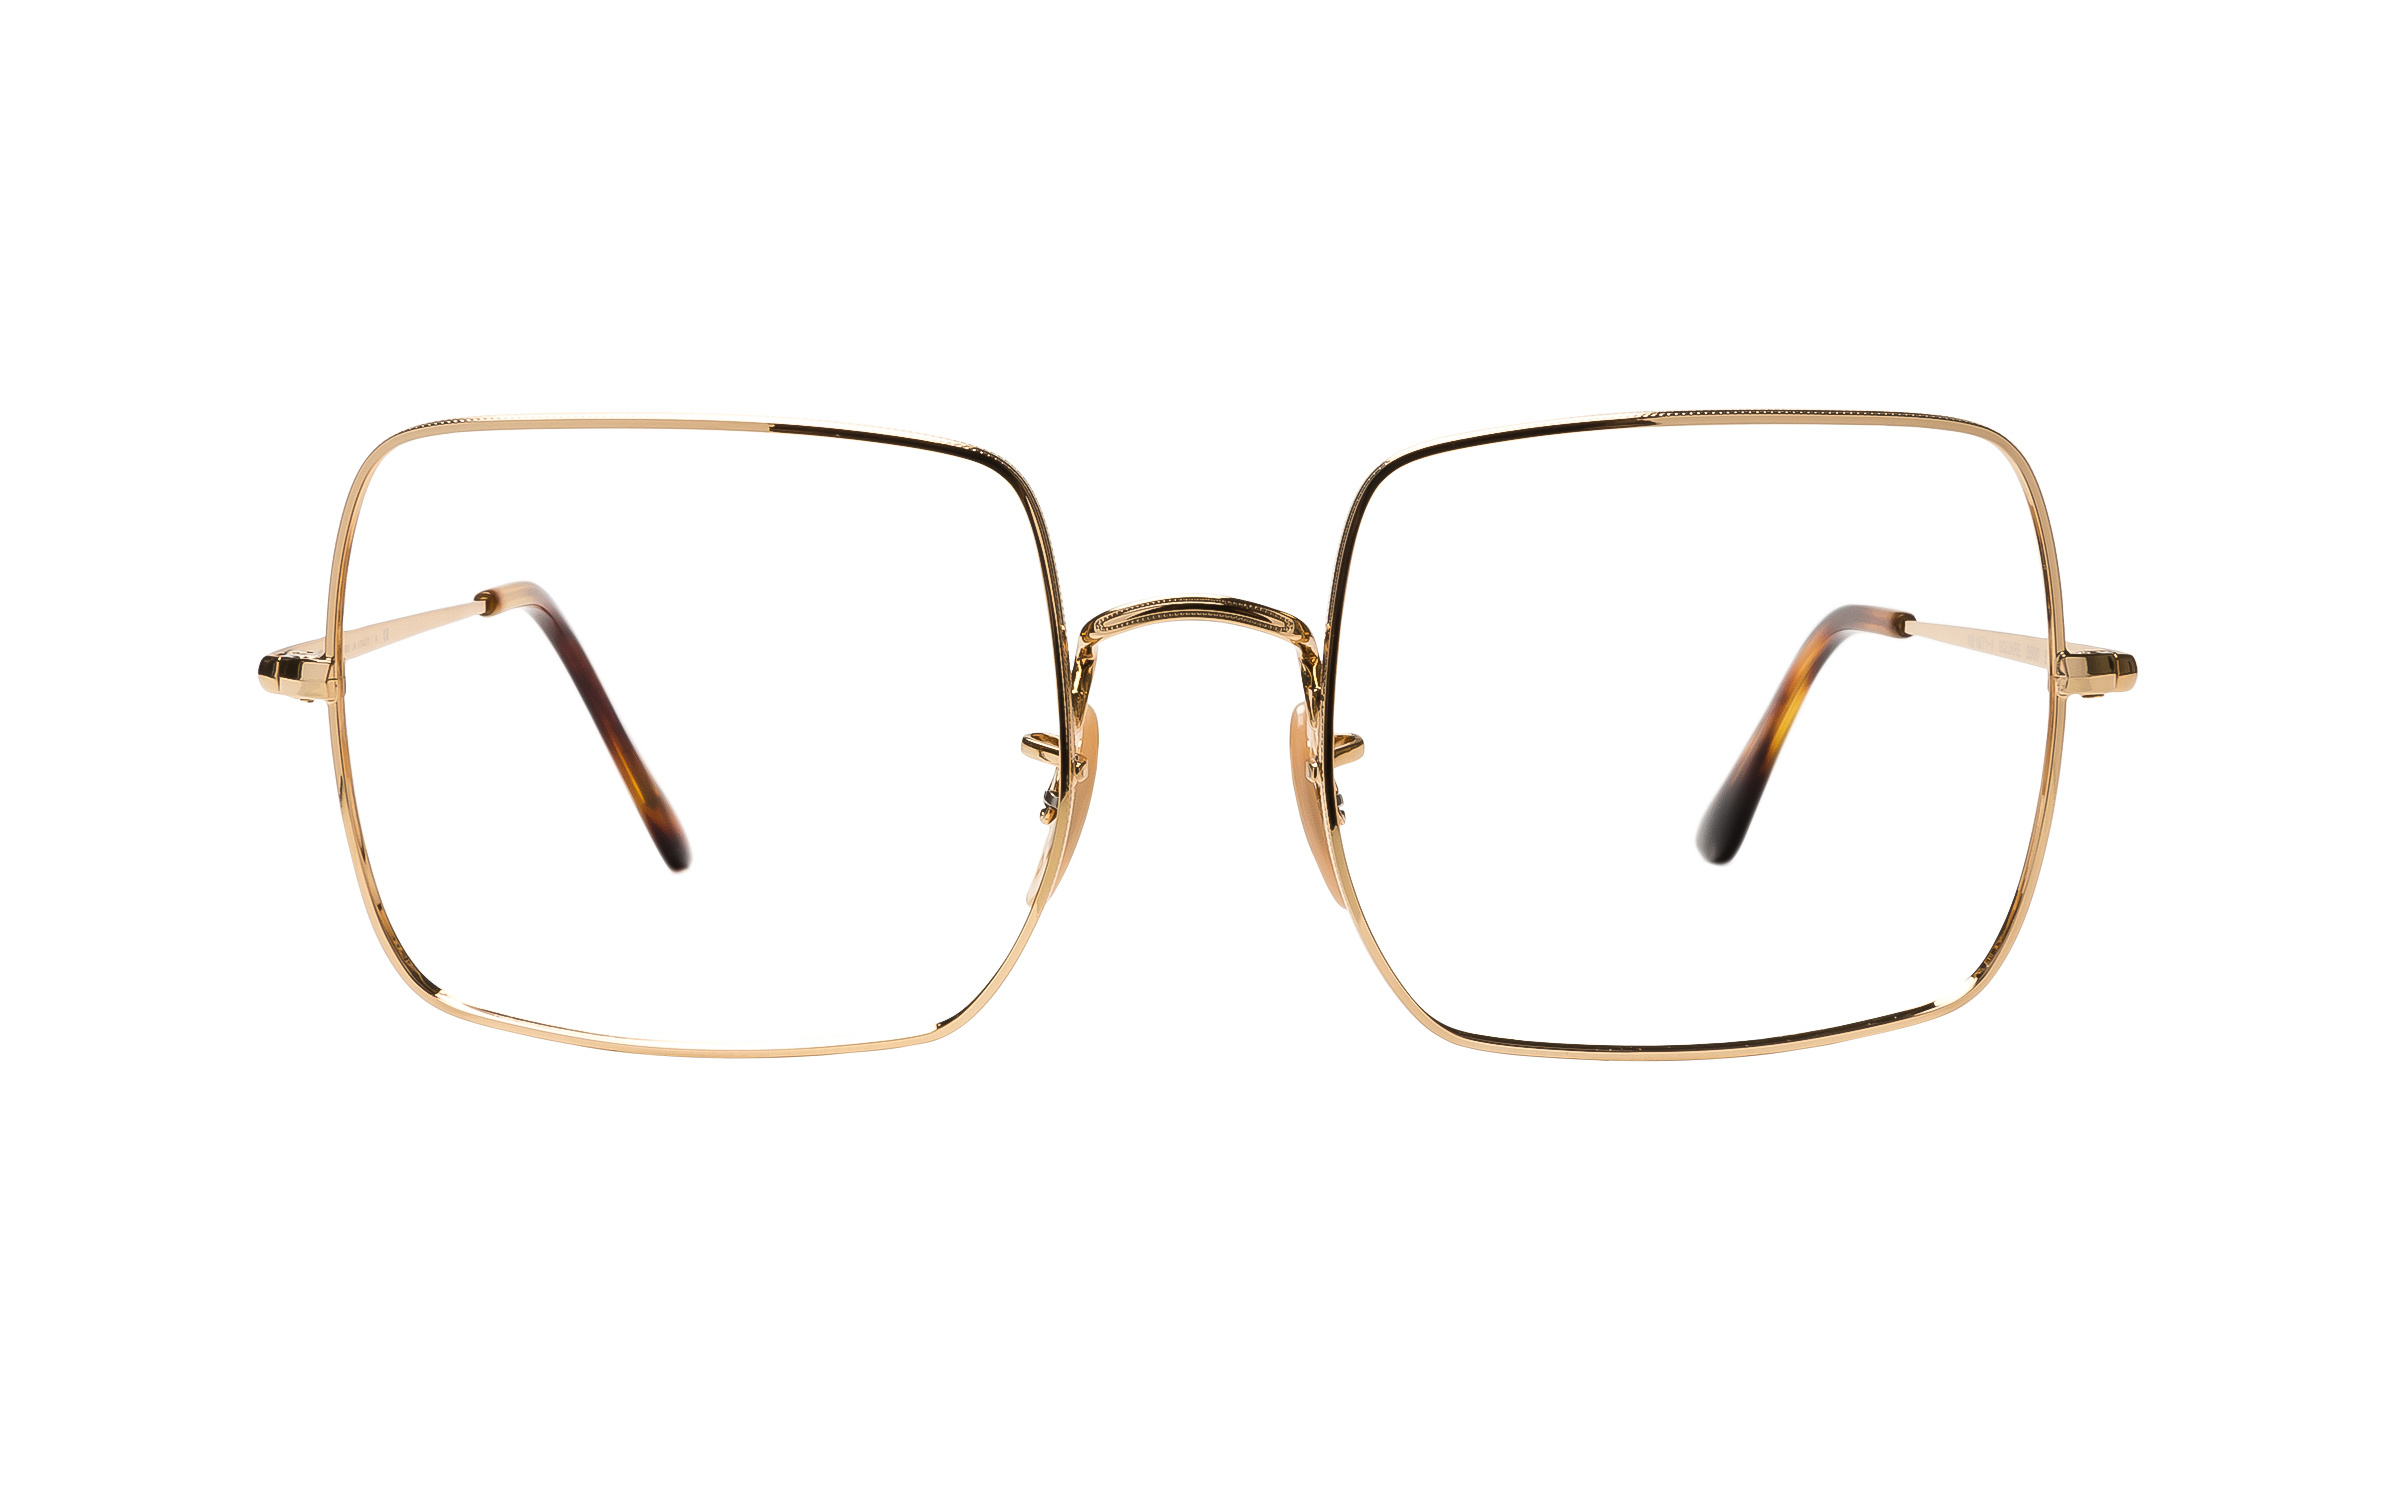 Luxottica Ray-Ban Square 1971 RX1971V 2500 (54) Eyeglasses and Frame in Gold | Plastic/Metal - Online Coastal